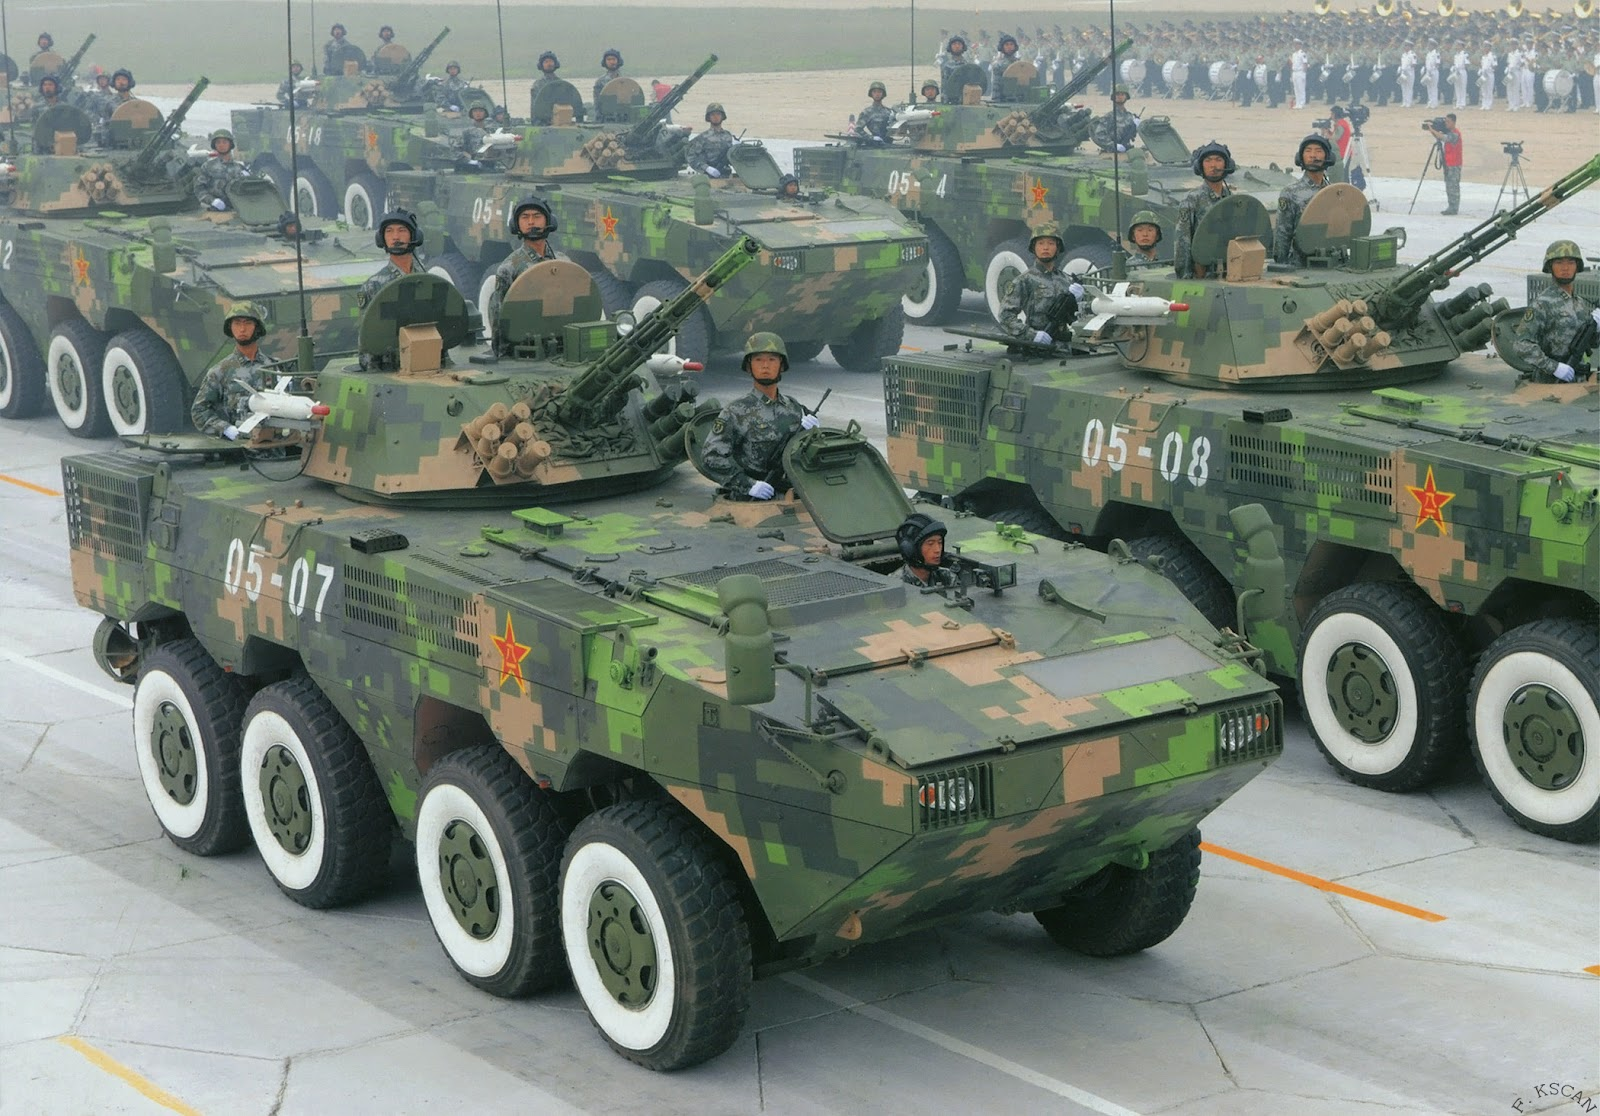 zbd 04 infantry fighting vehicle - HD 1600×1116